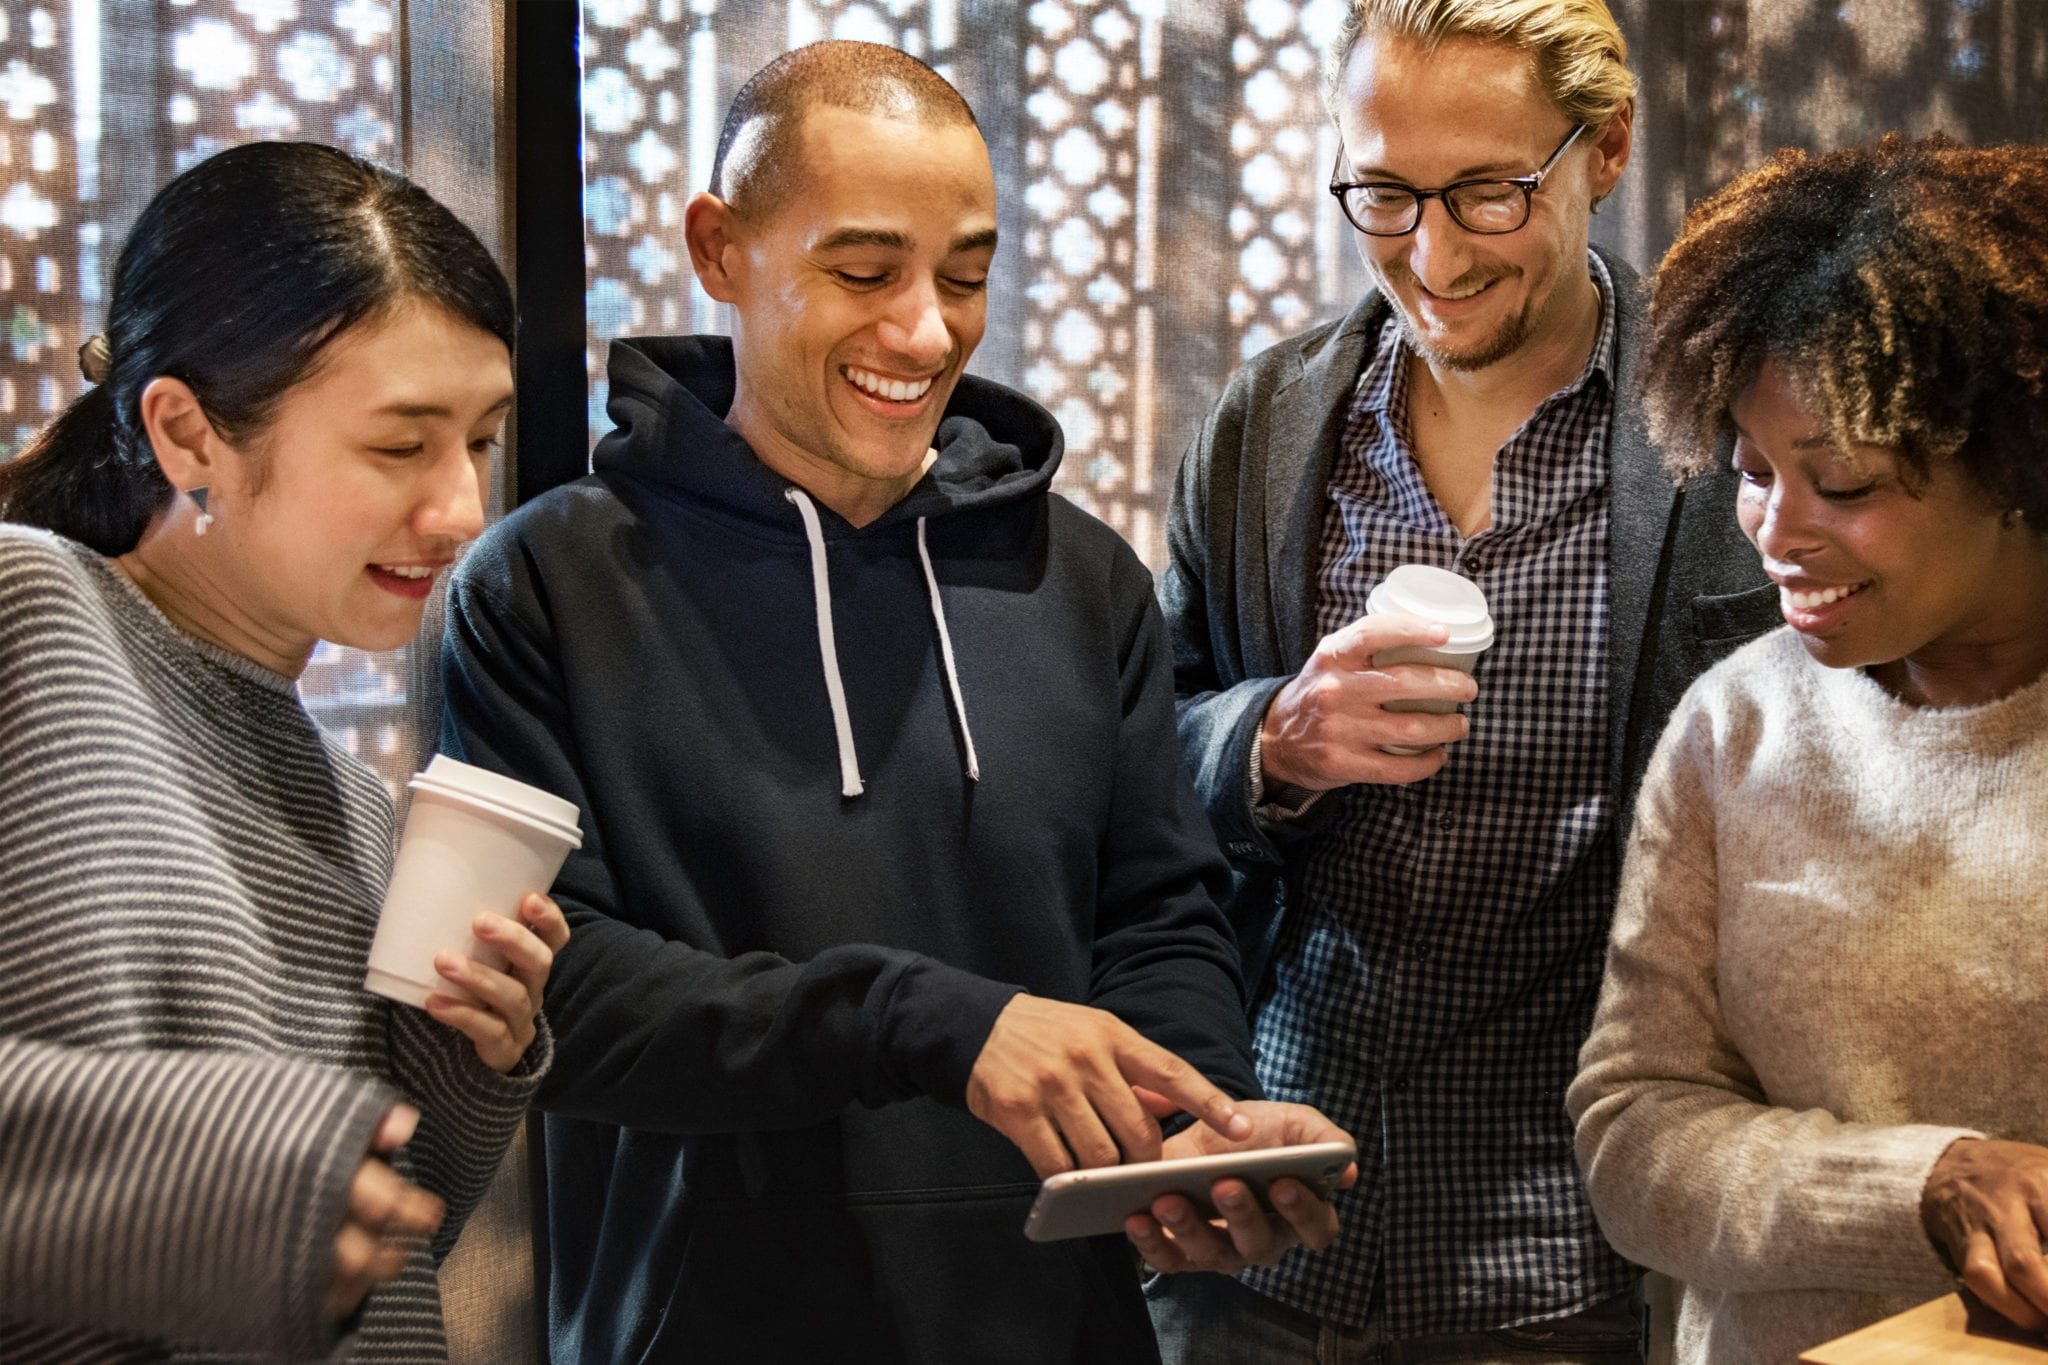 Young people watching a video on a cell phone